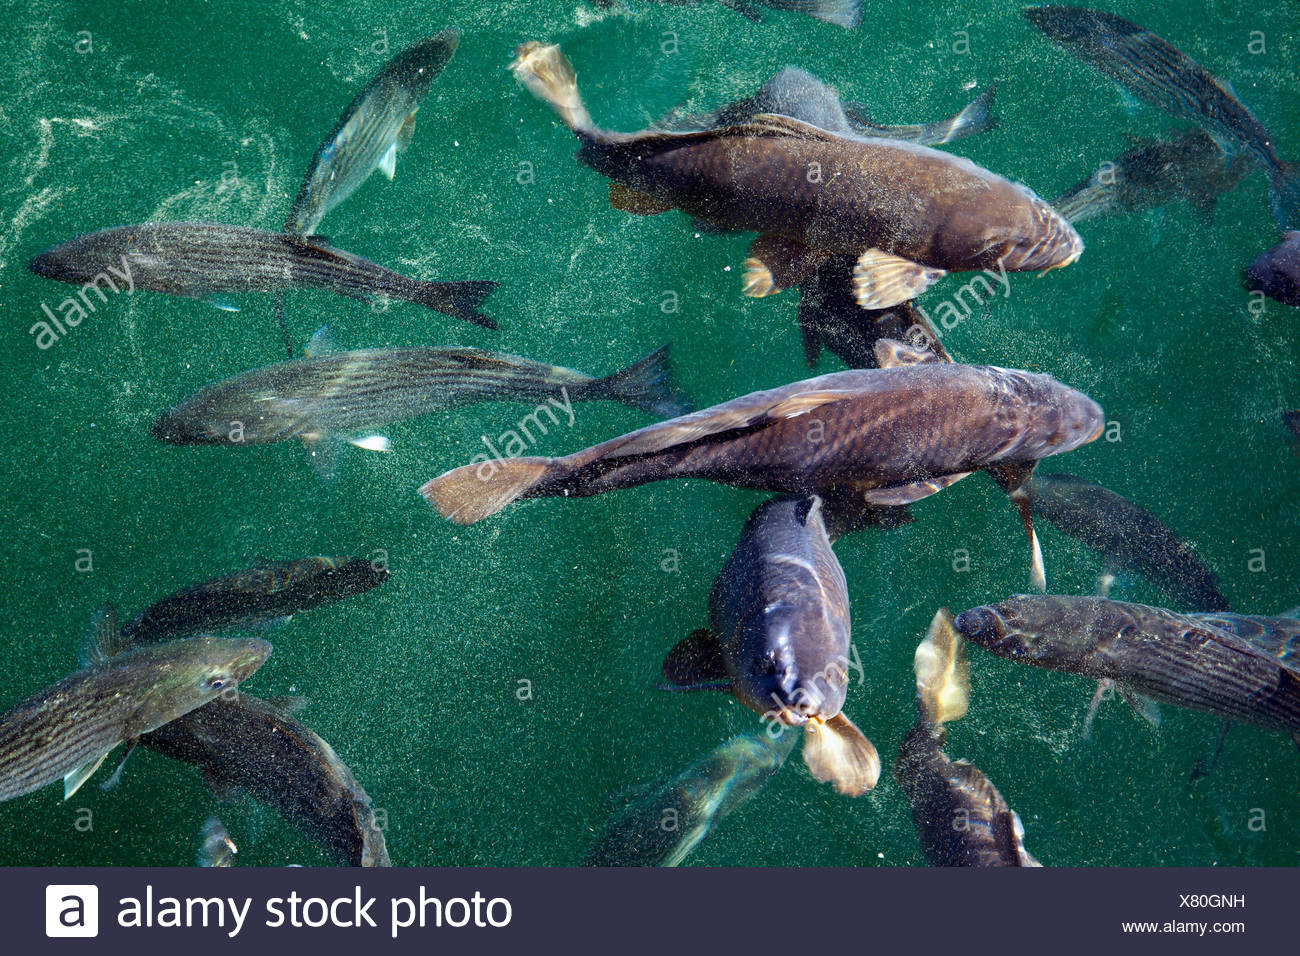 Striped Bass Stock Photos & Striped Bass Stock Images - Alamy